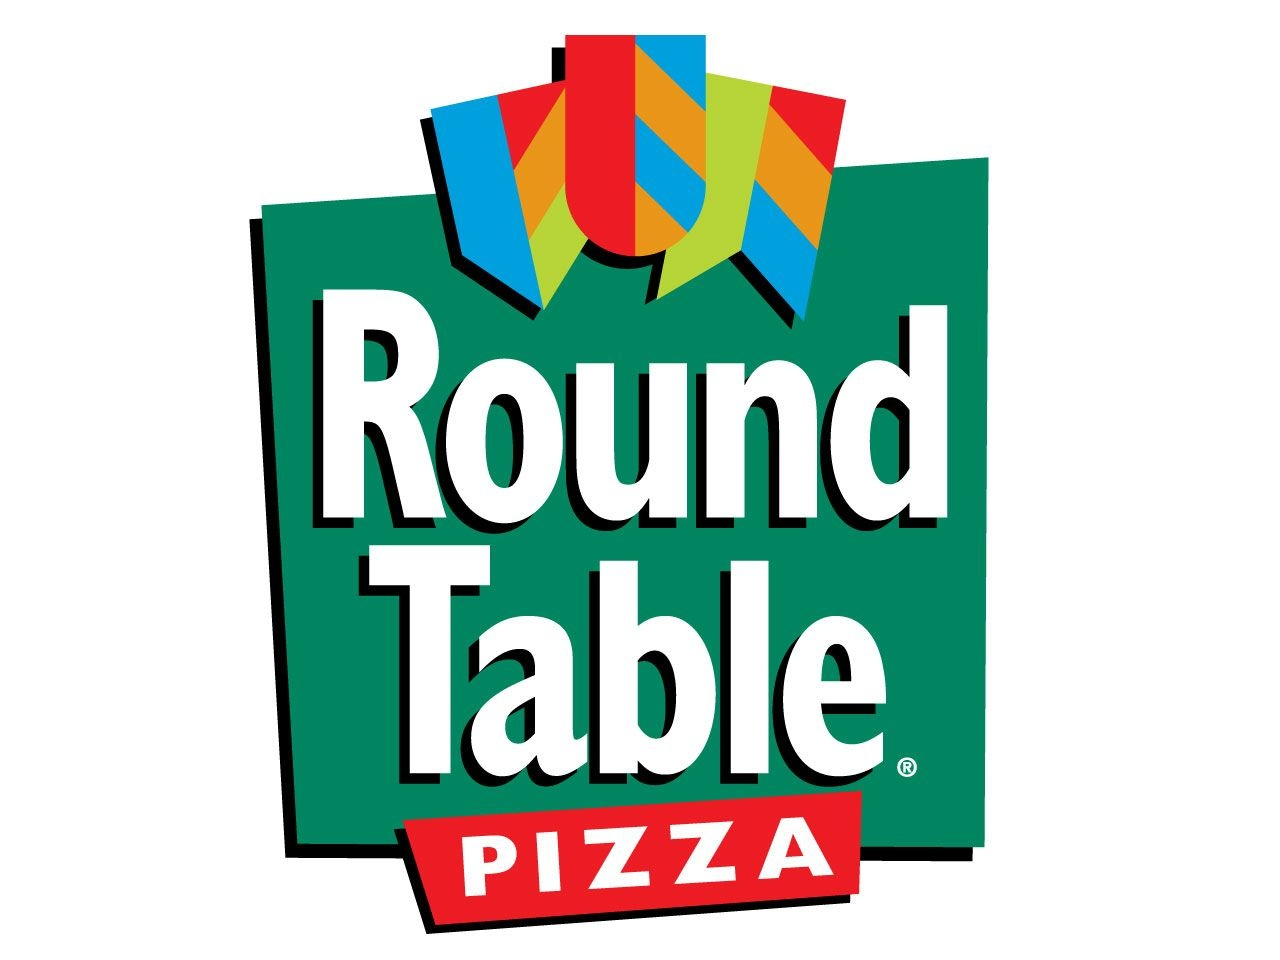 Round Table Pizza (Restaurants) | Food & Drink | Pizza Coupons - Free Printable Round Table Pizza Coupons